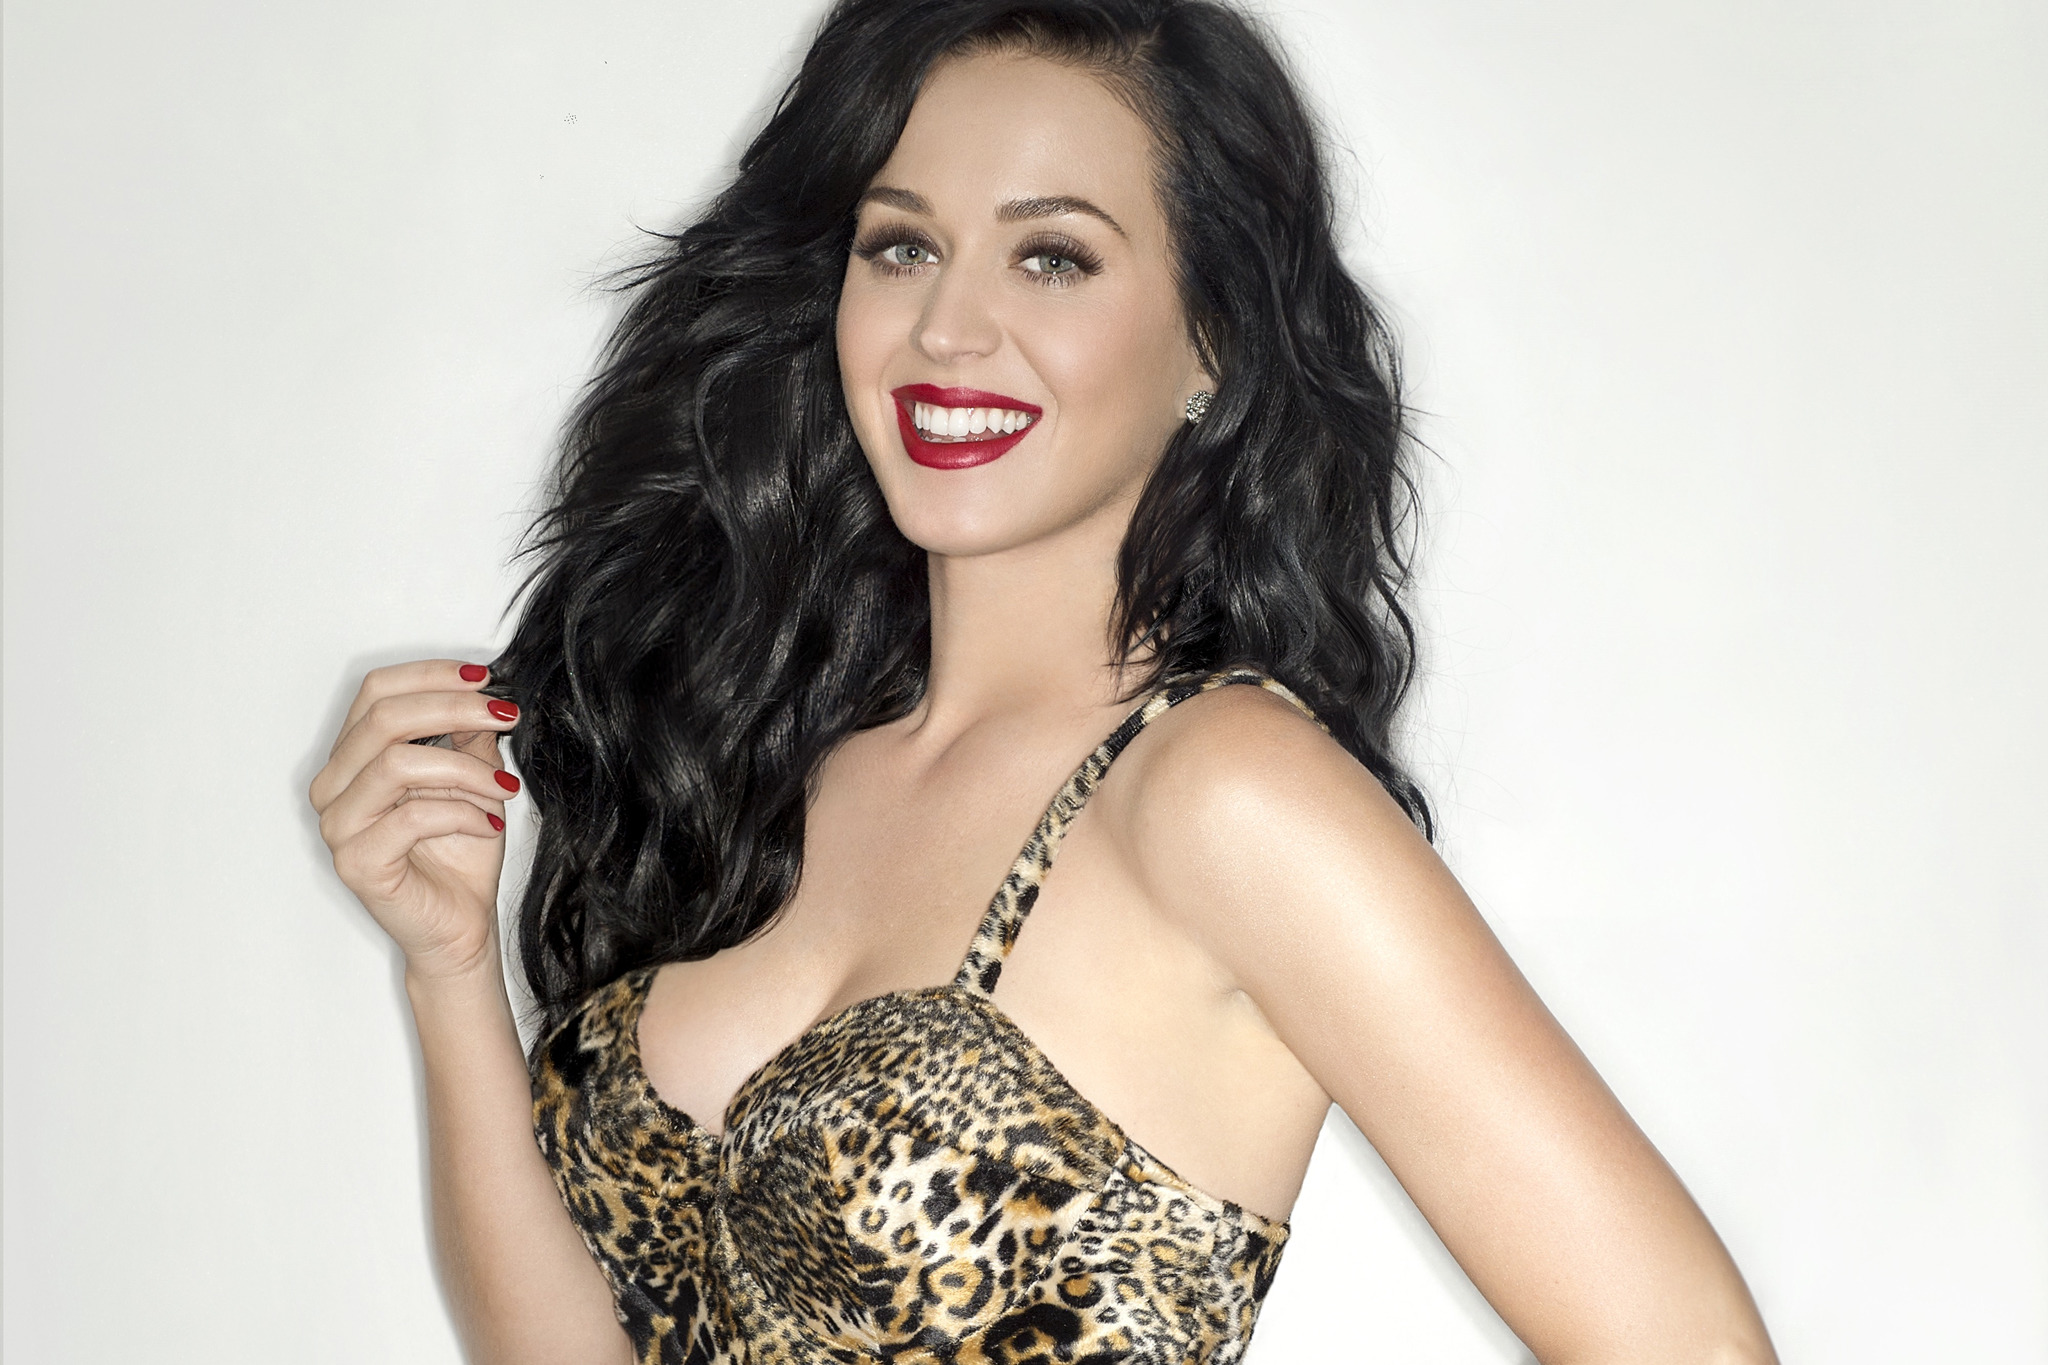 Katy Perry | Madison Square Garden; July 9. Prudential Center; July 11. Barclays Center; July 24, 25.